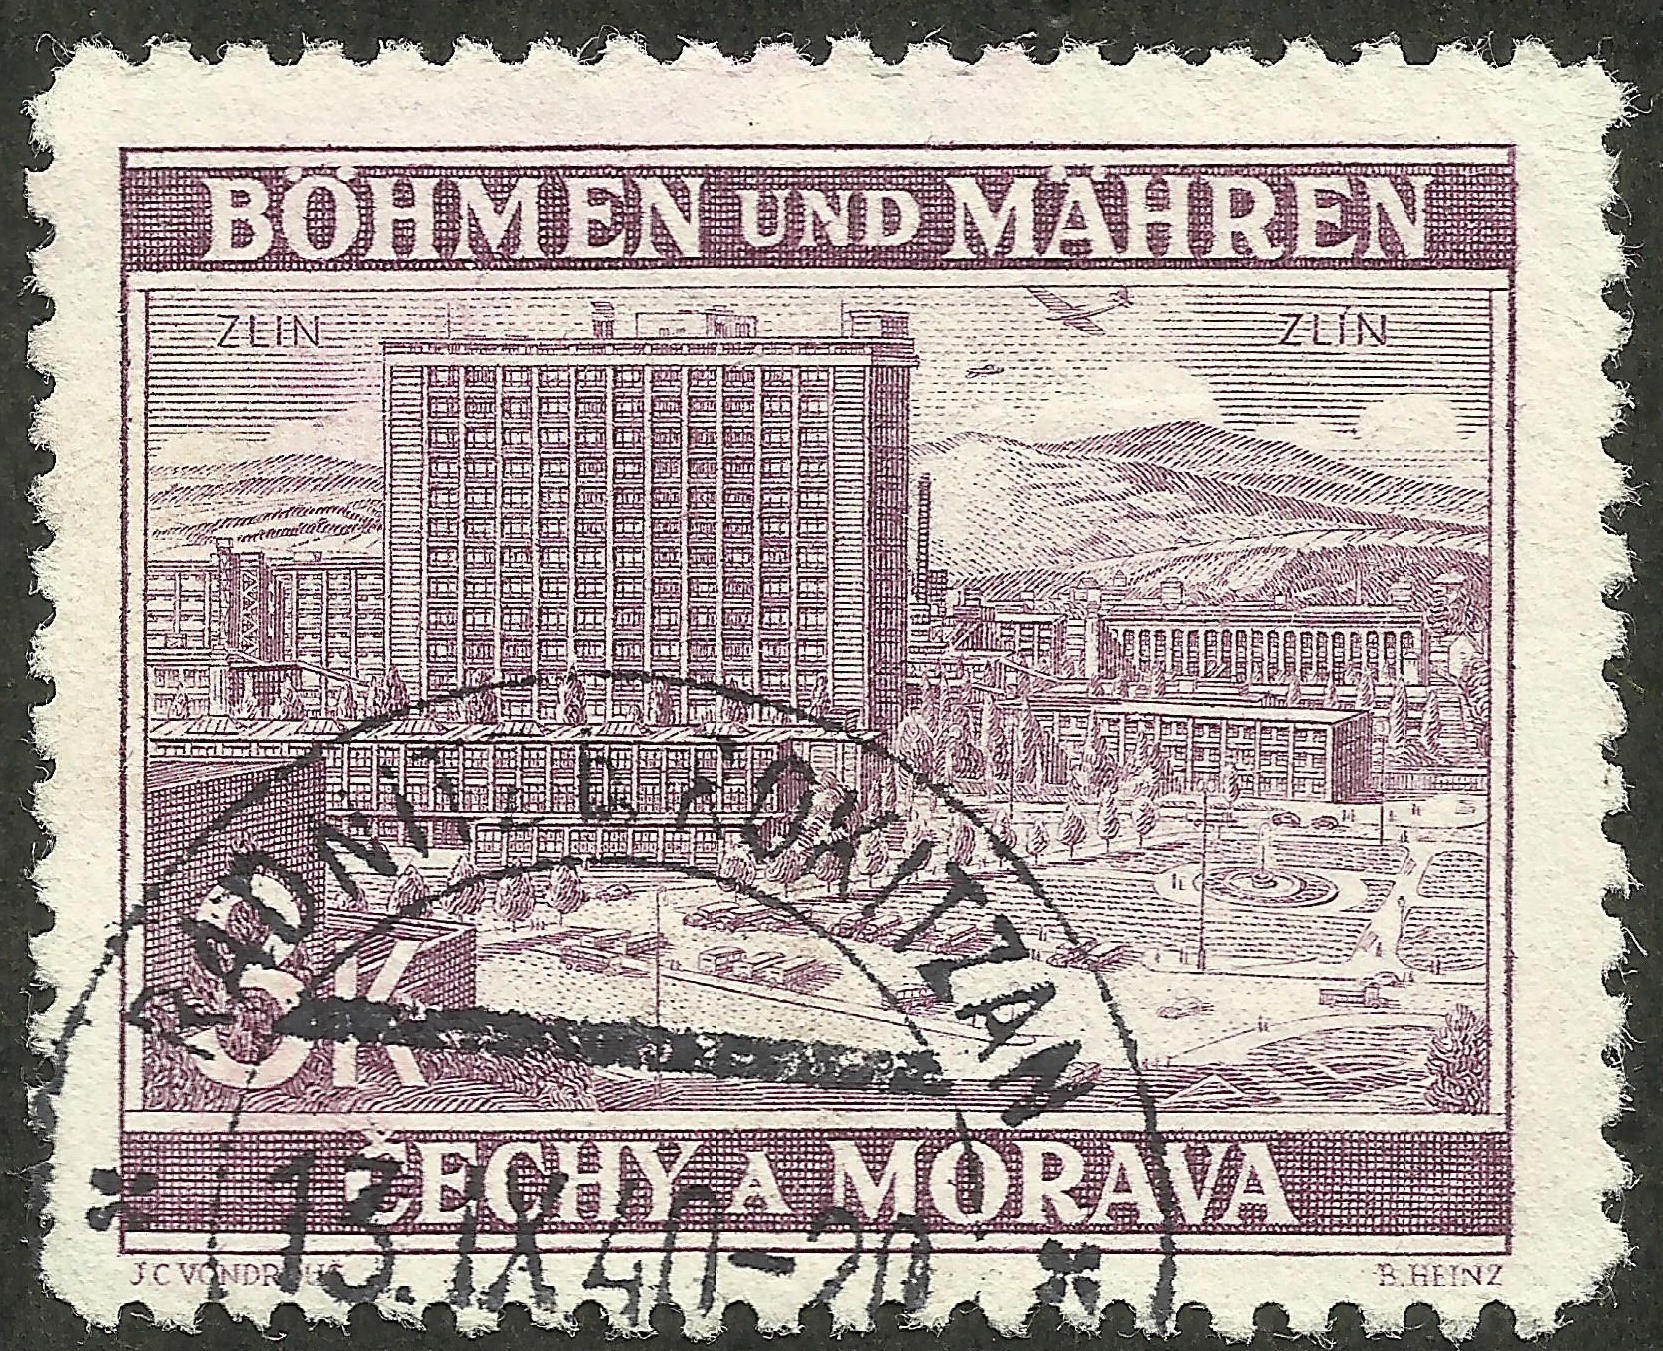 Bohemia and Moravia #35 (1939) postmarked 13 September 1940